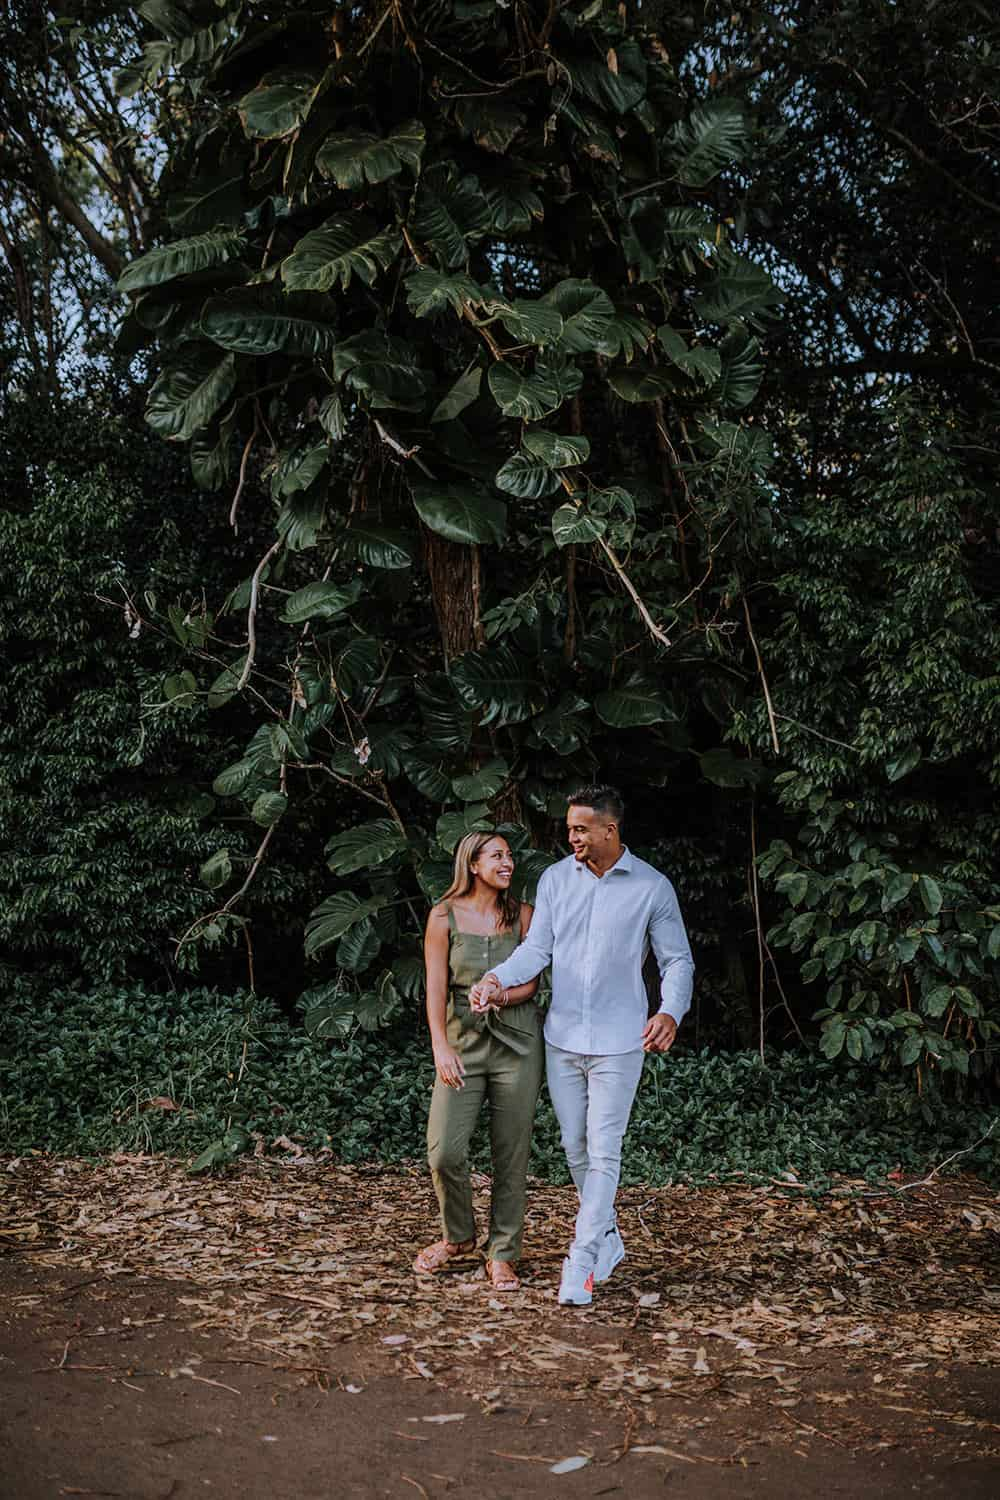 Hawaii Adventurous Couples Session | Waimea by Anela Benavides Photography. Includes posing inspiration for an outdoor couples session, engagement outfit inspiration. Book your Hawaii couples session and browse the blog for more inspiration